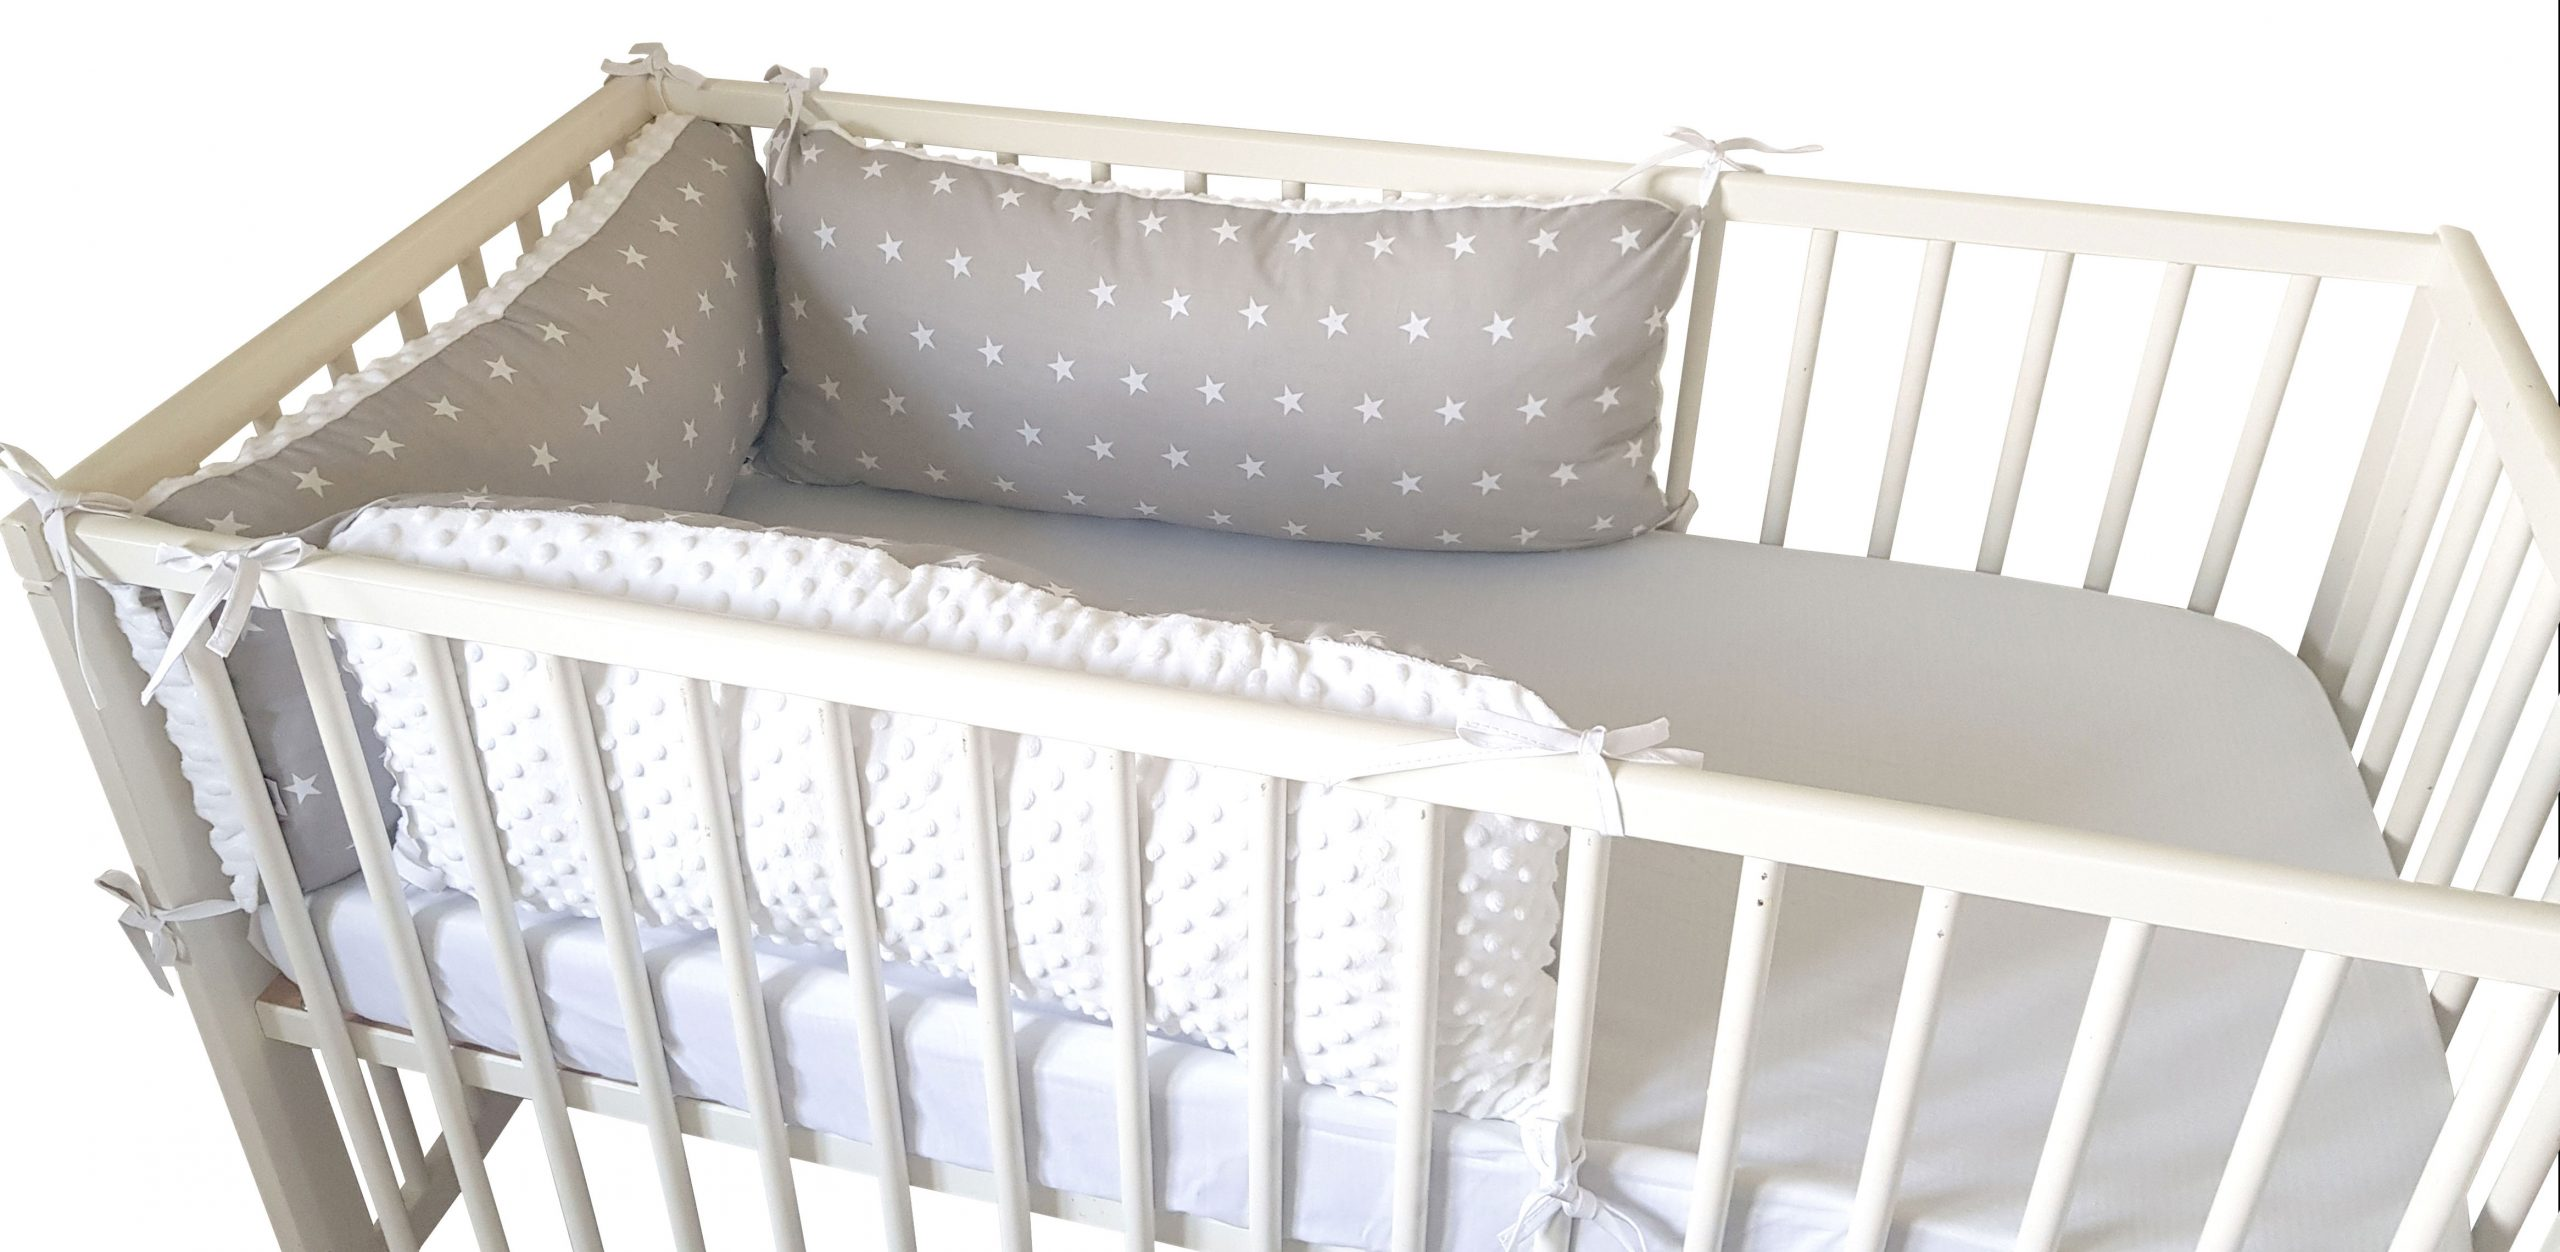 Home baby shop 3